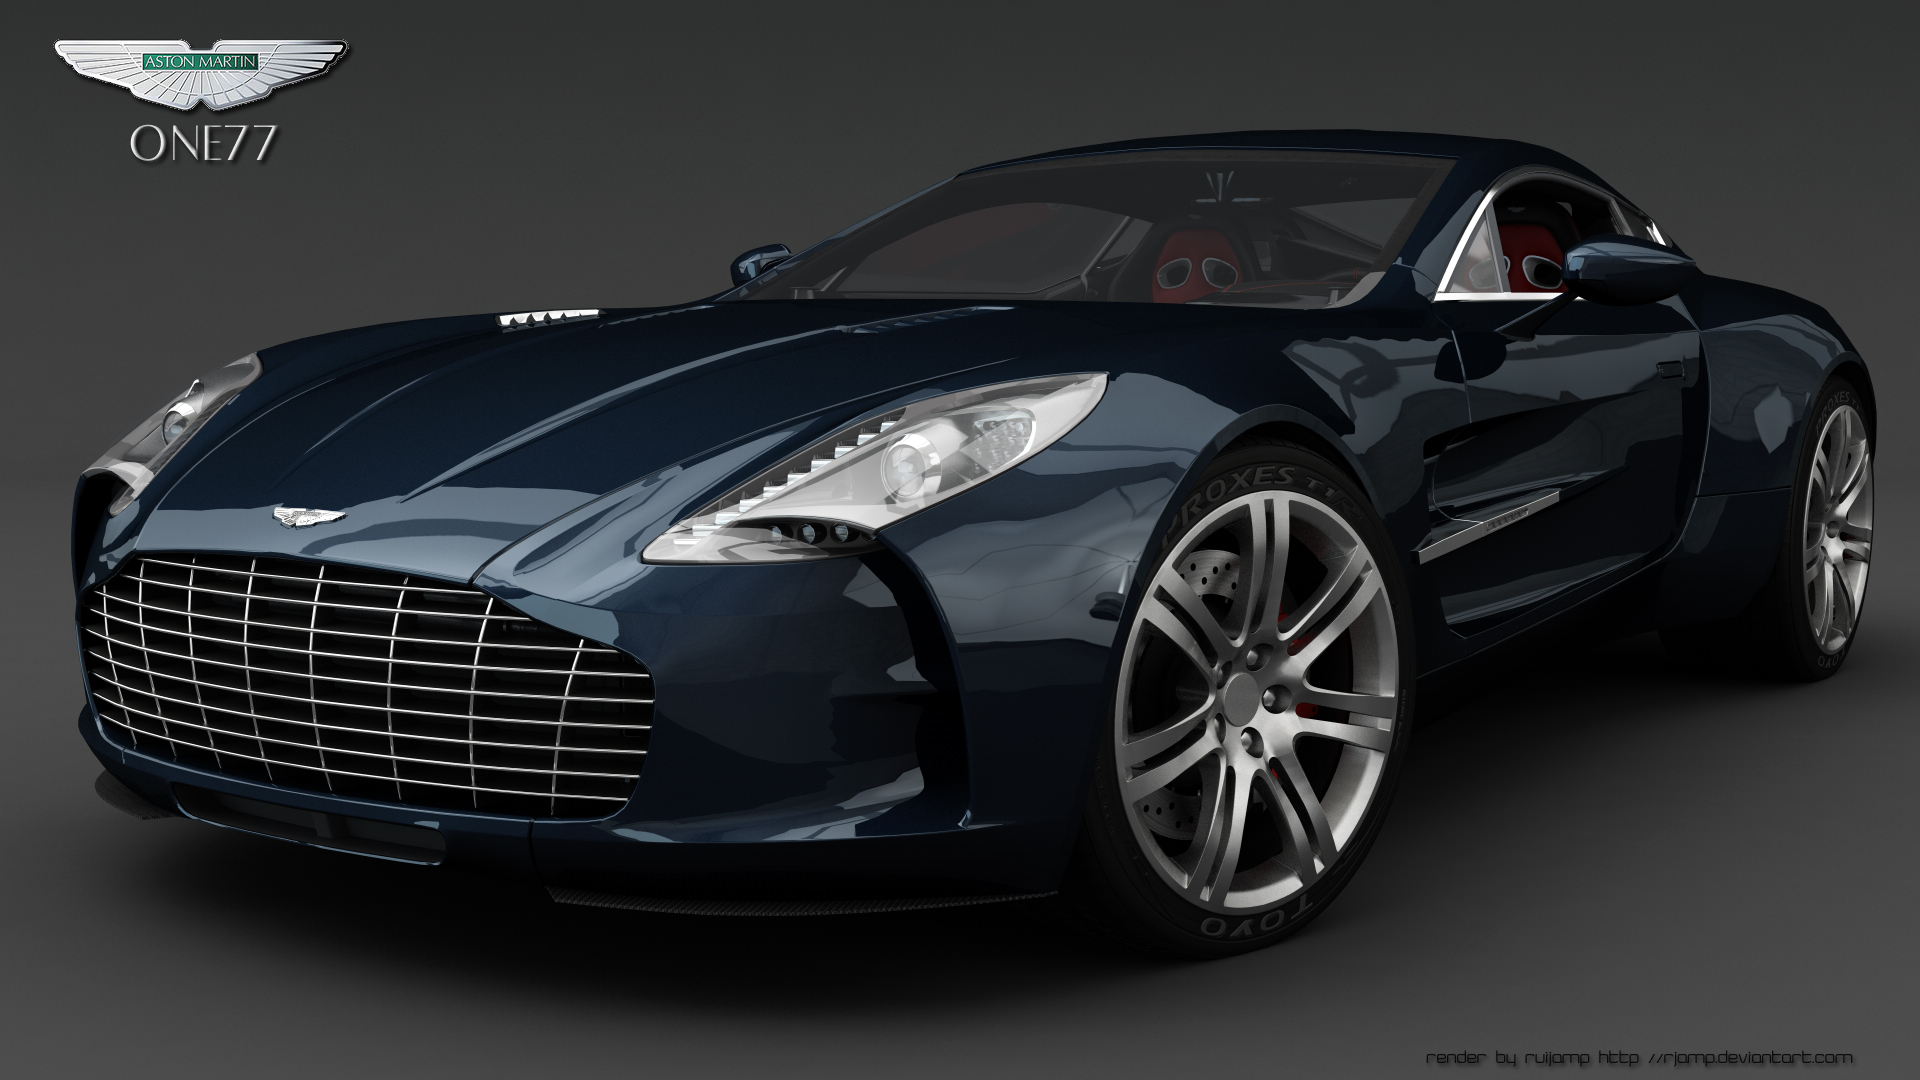 Aston Martin One 77 Wallpaper 2 1920x1080